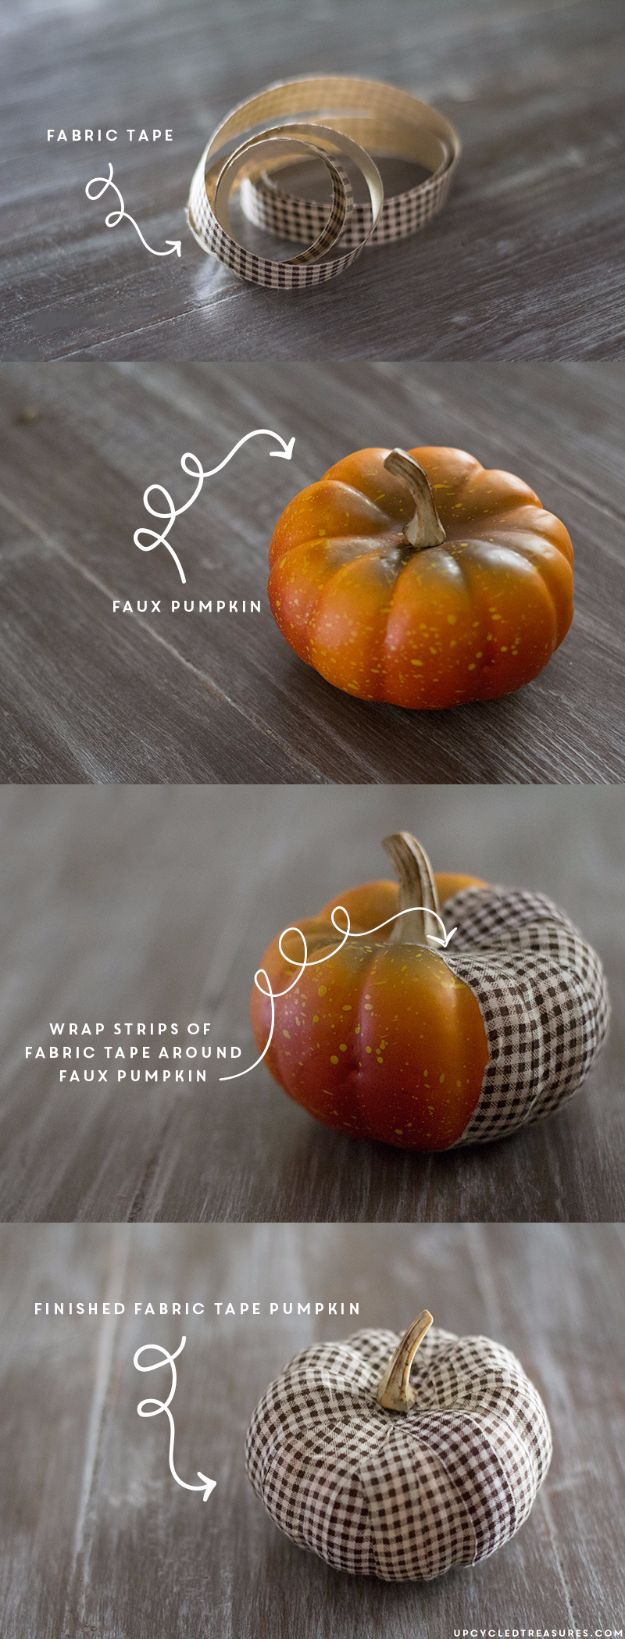 Best Crafts for Fall - DIY Fabric Tape Pumpkin - DIY Mason Jar Ideas, Dollar Store Crafts, Rustic Pumpkin Ideas, Wreaths, Candles and Wall Art, Centerpieces, Wedding Decorations, Homemade Gifts, Craft Projects with Leaves, Flowers and Burlap, Painted Art, Candles and Luminaries for Cool Home Decor - Quick and Easy Projects With Step by Step Tutorials and Instructions